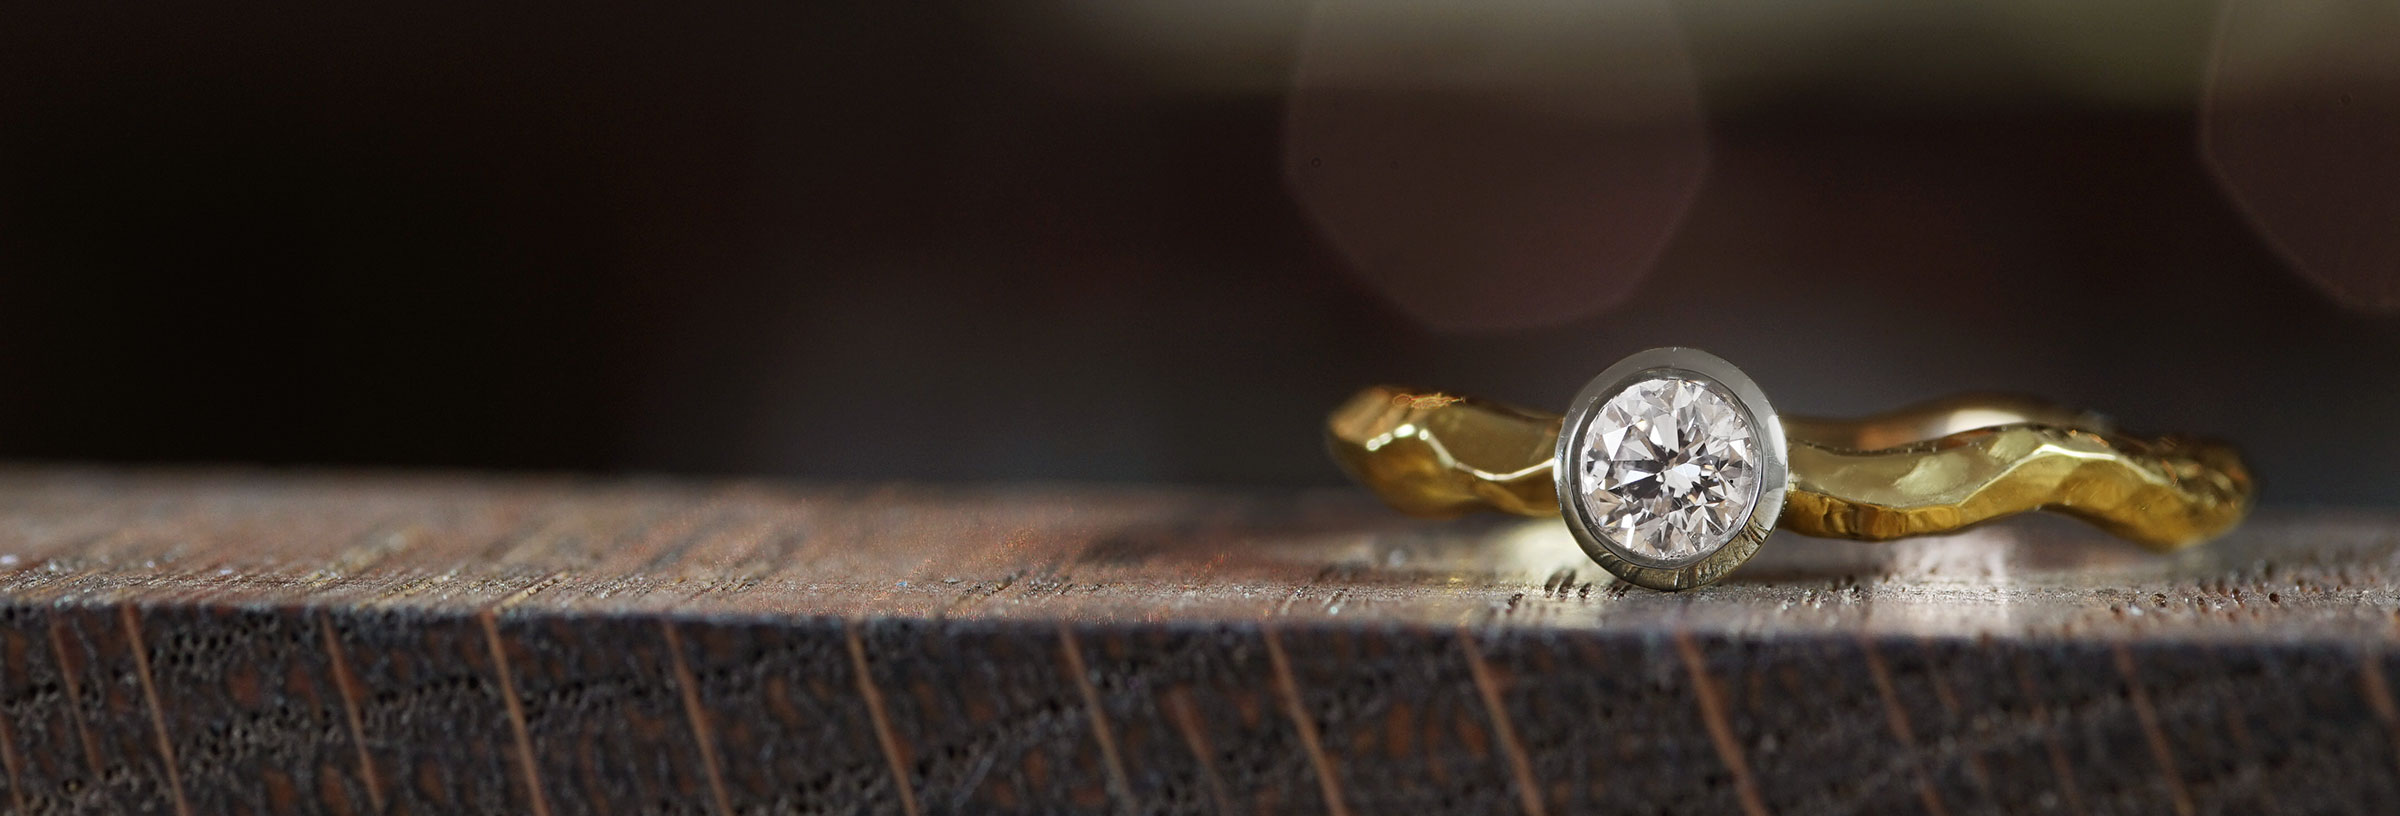 organic-fairtrade-yellow-and-white-gold-diamond-solitaire-engagement-ring